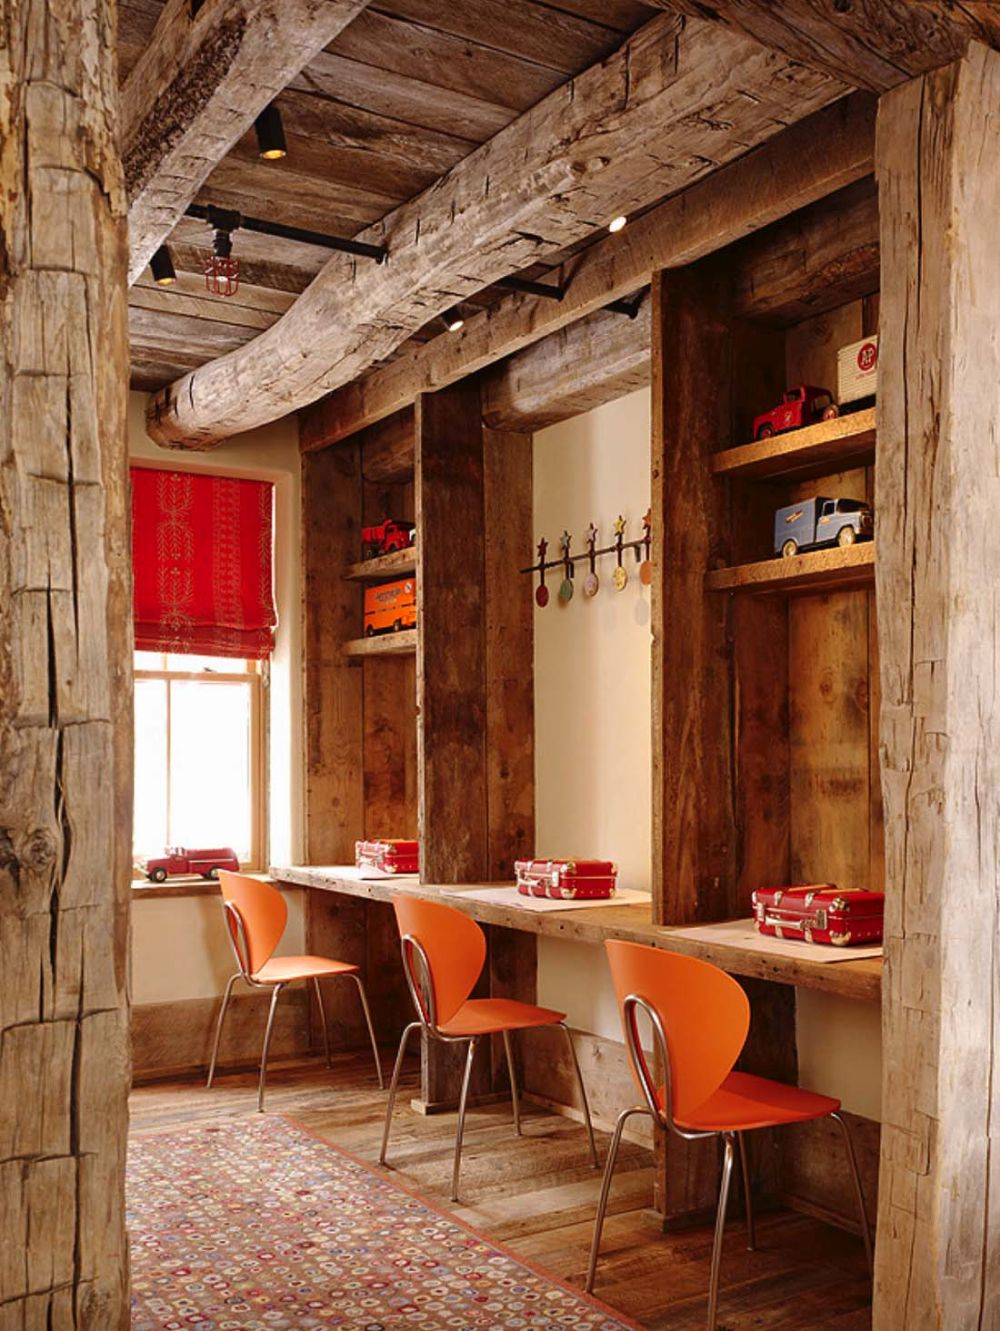 Some of the exposed wooden beams are meant to be purely ornamental